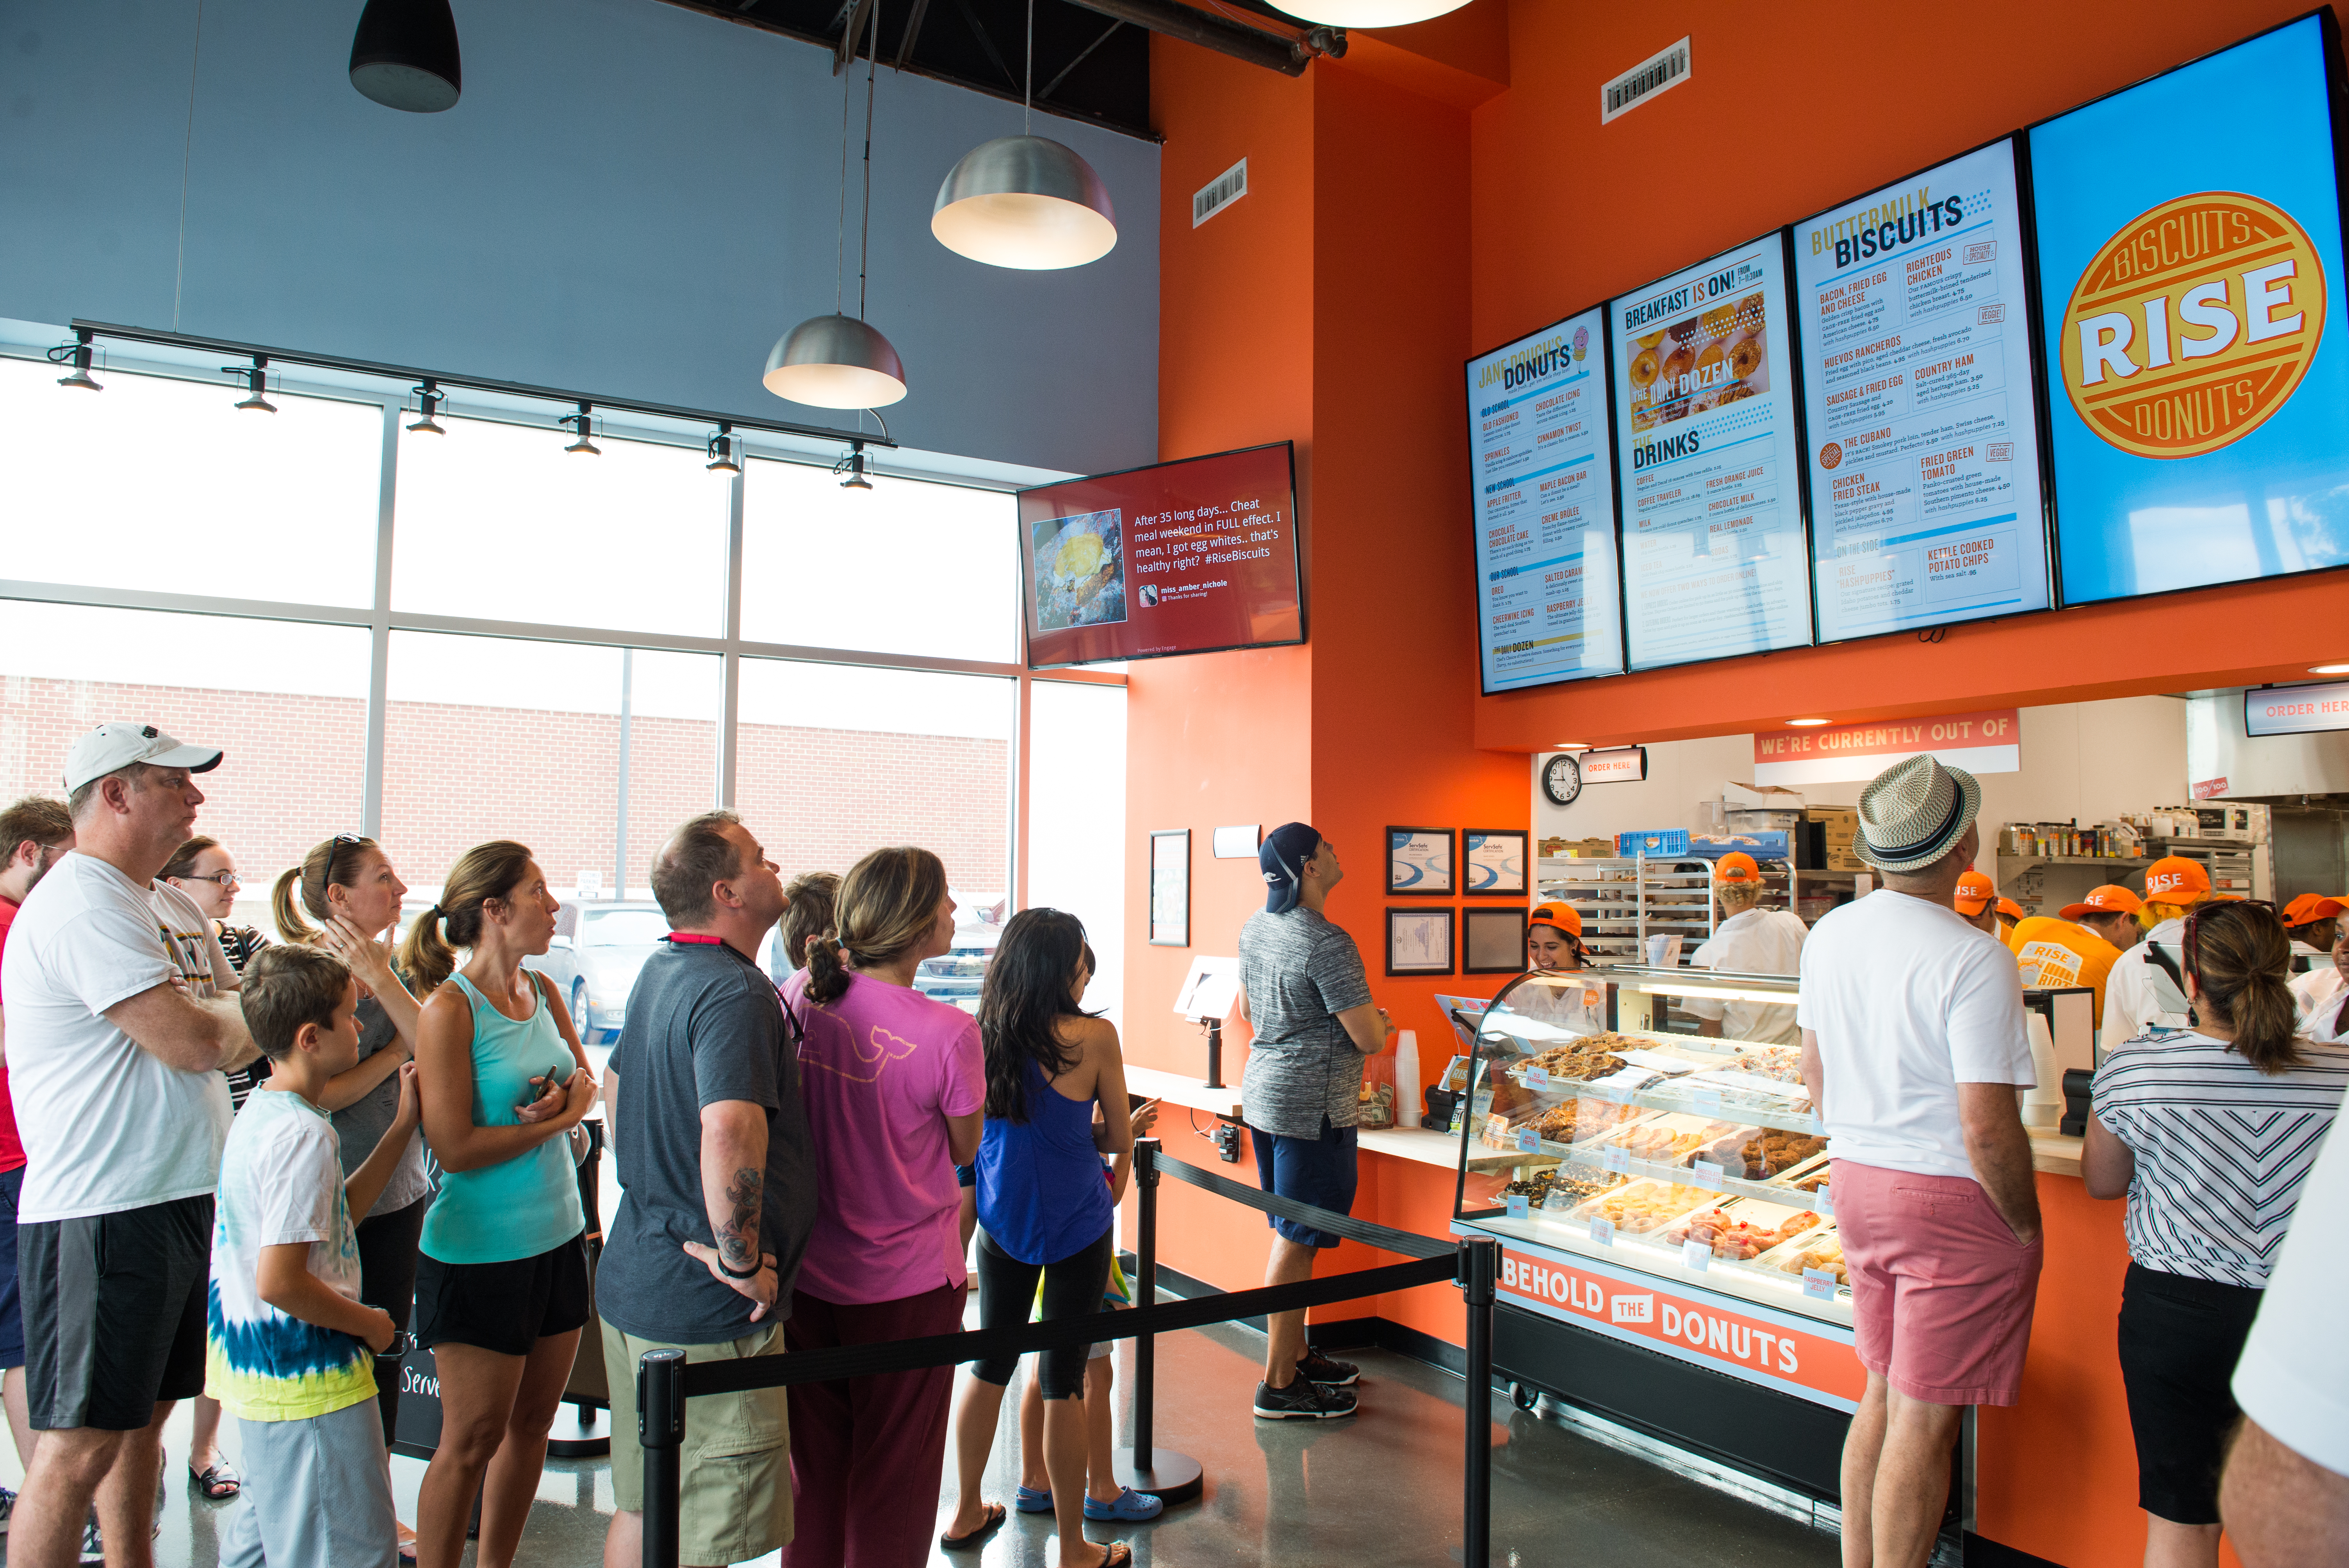 Inside the Doughnut and Biscuit Chain That's About to Be Everywhere